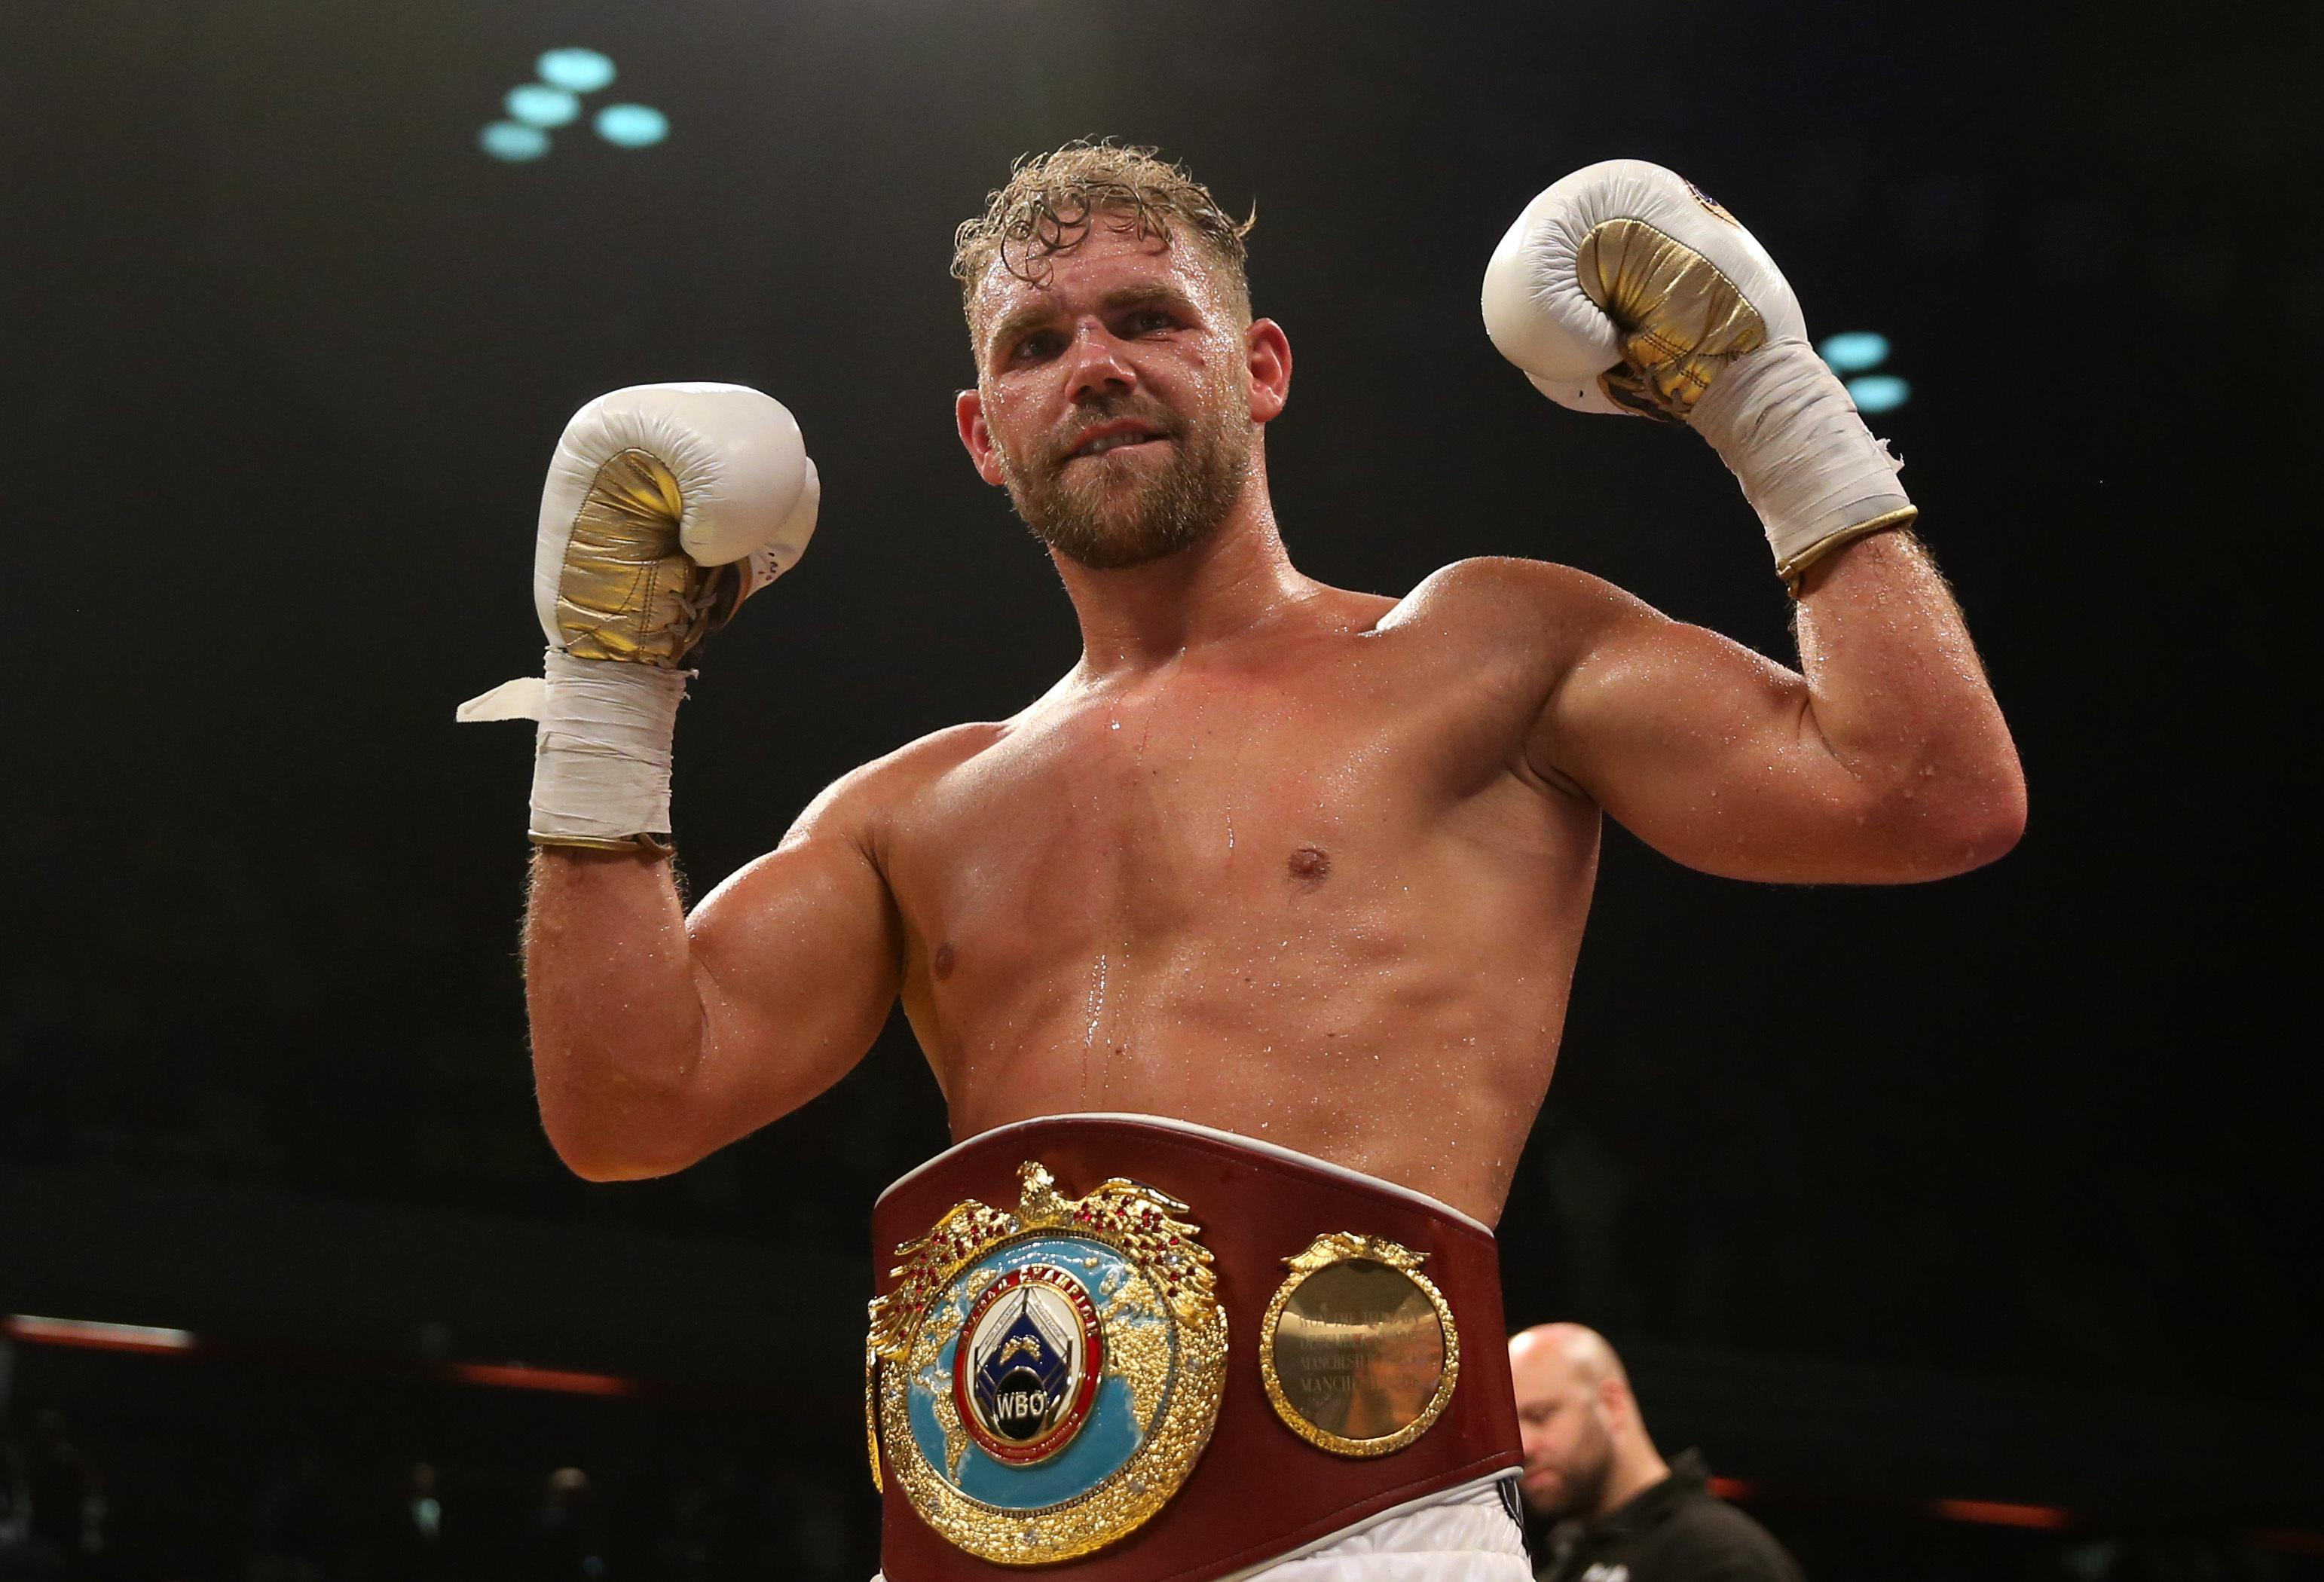 Billy Joe Saunders is the undefeated WBO middleweight champion